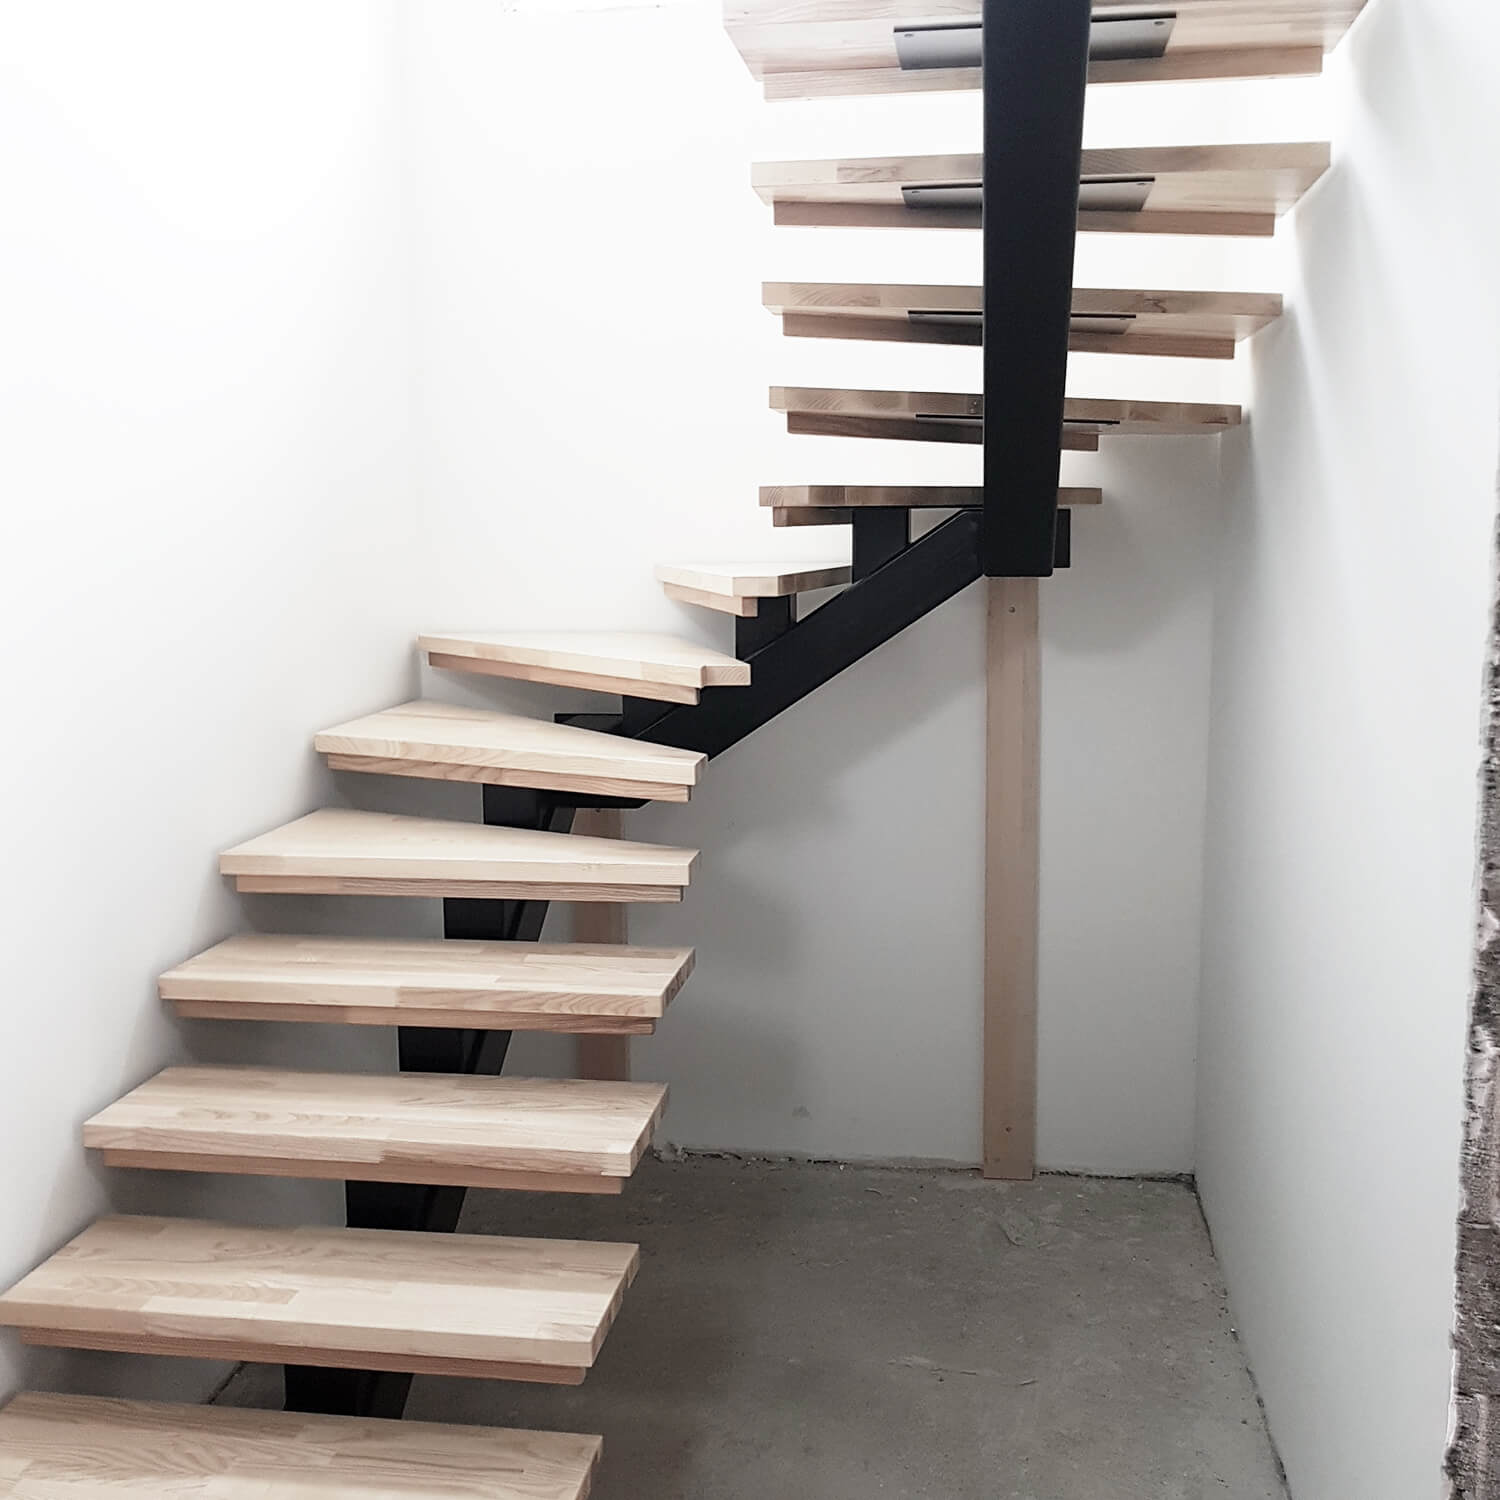 Staircases | Thorman | Indoor and outdoor staircases